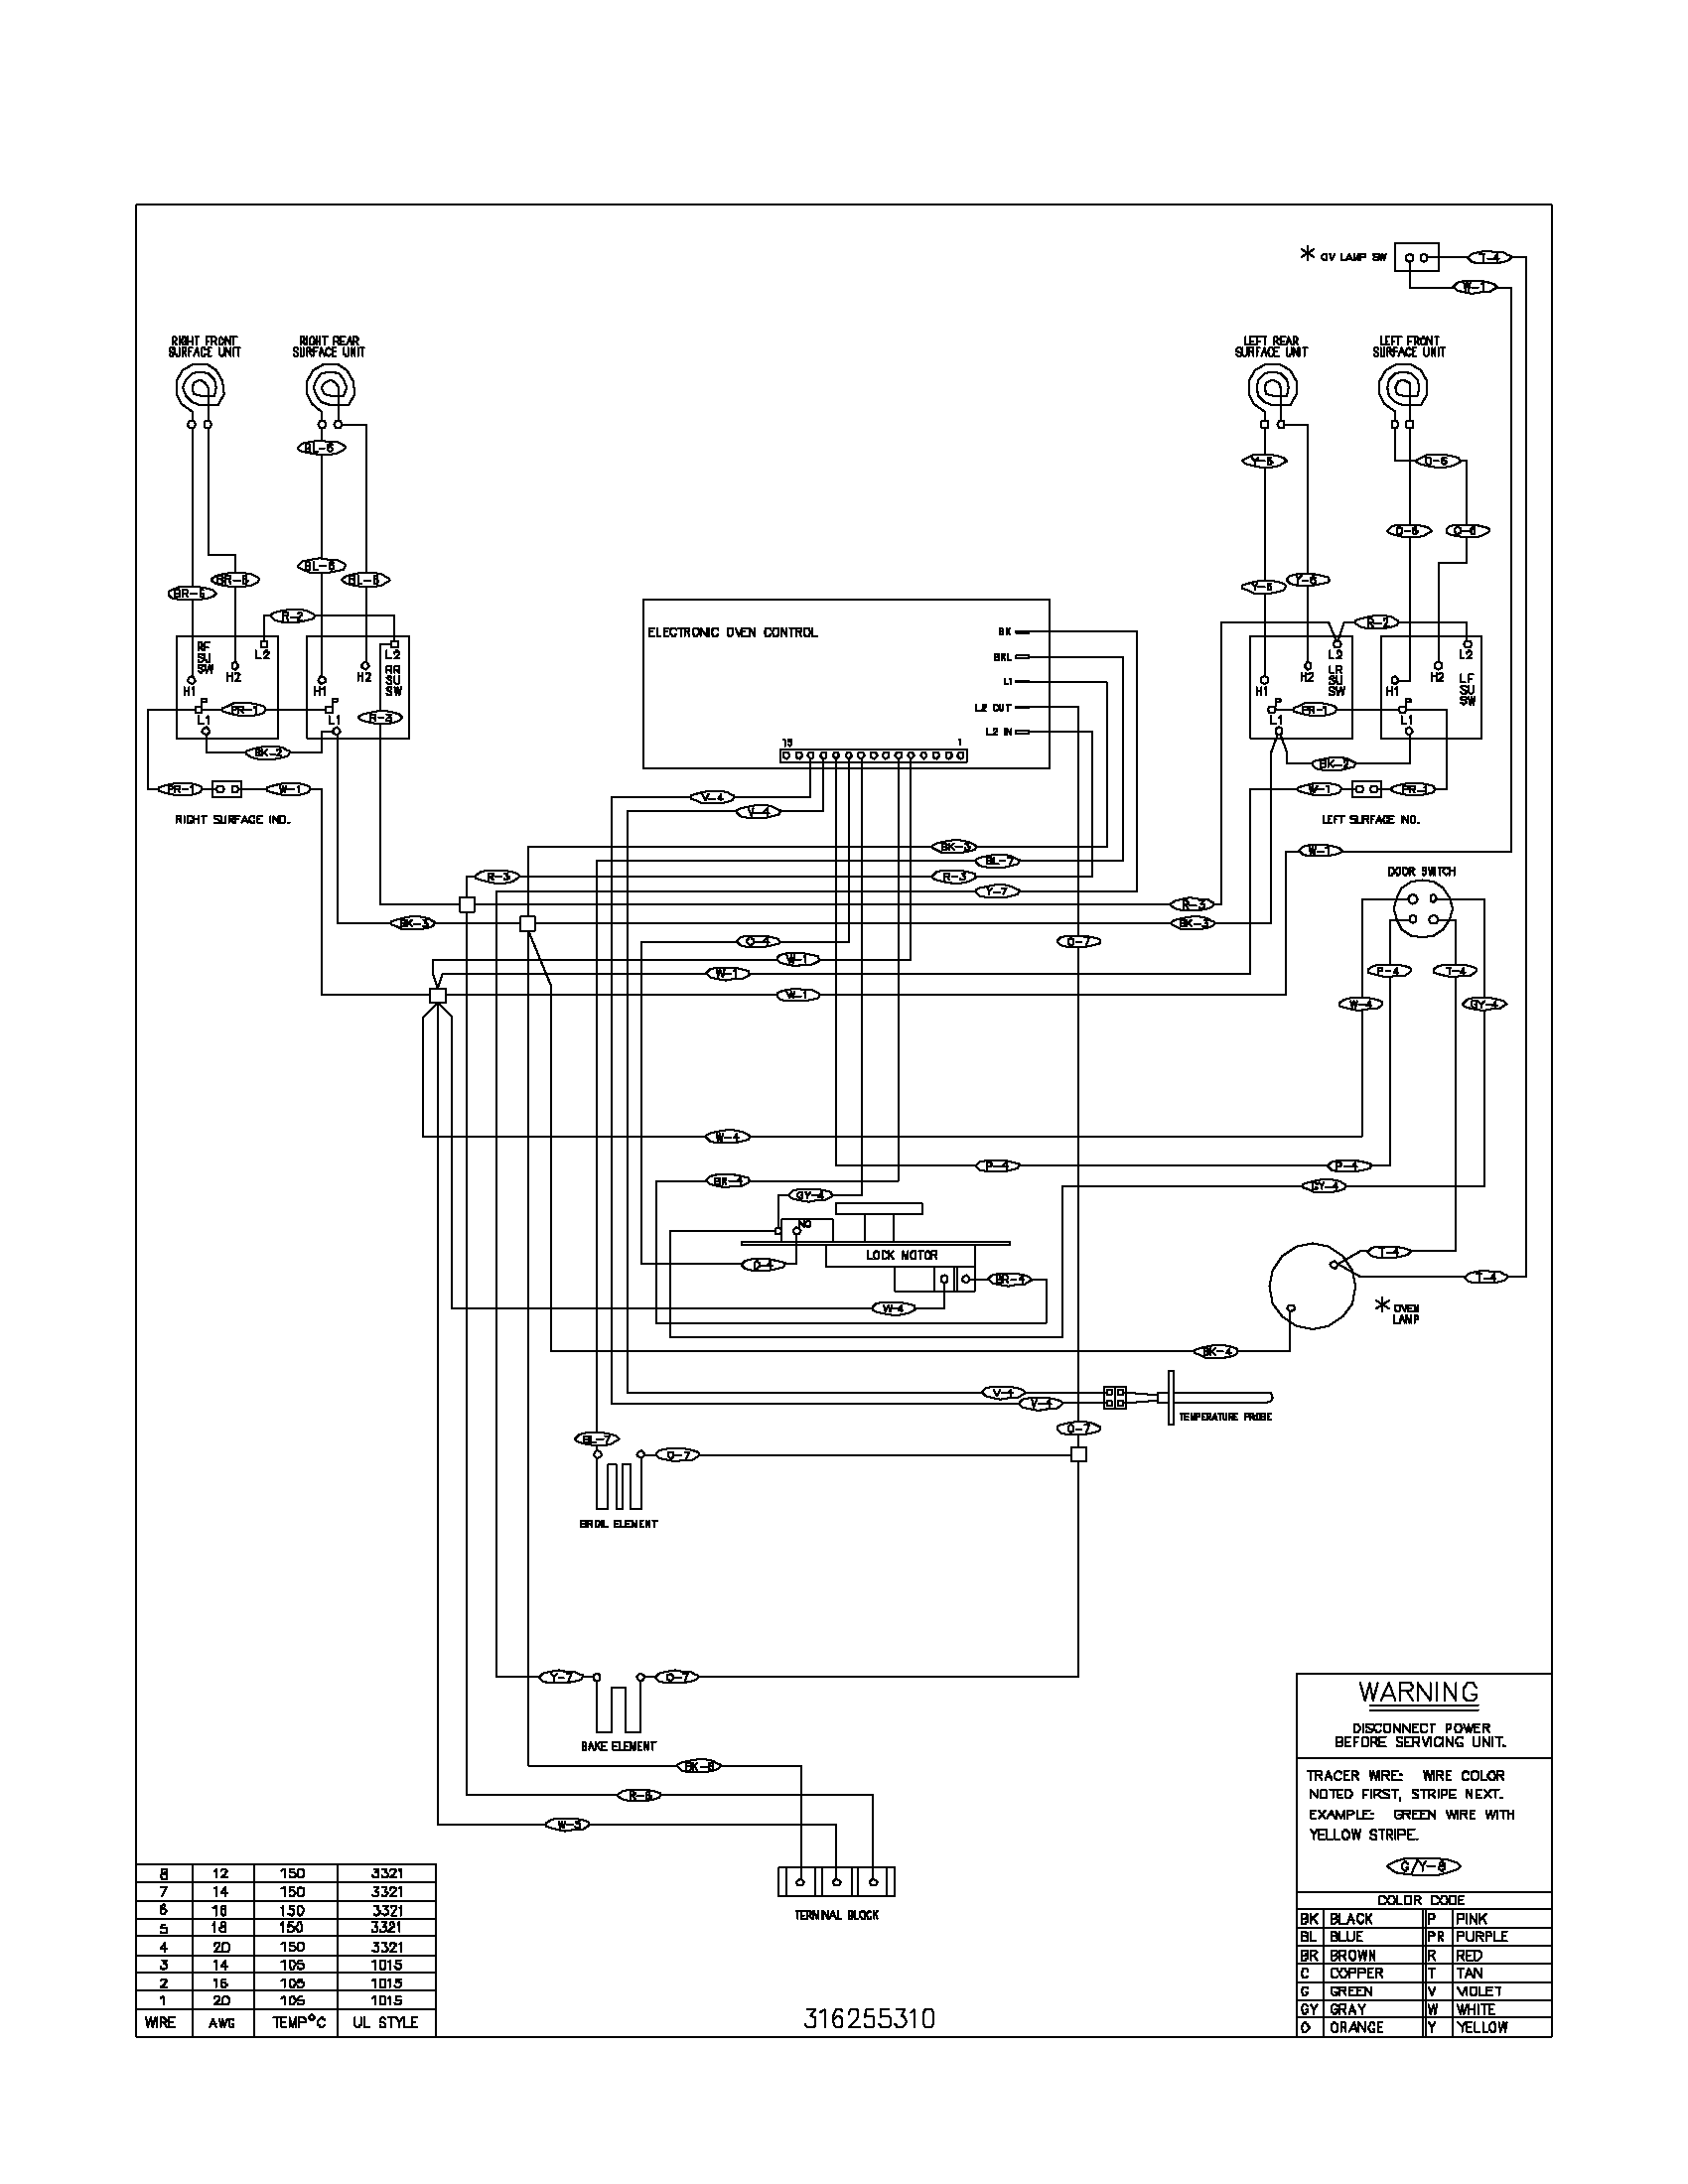 wiring diagram parts frigidaire stove wiring diagram frigidaire washer wiring diagram 6 heat stove switch wiring diagram at gsmx.co